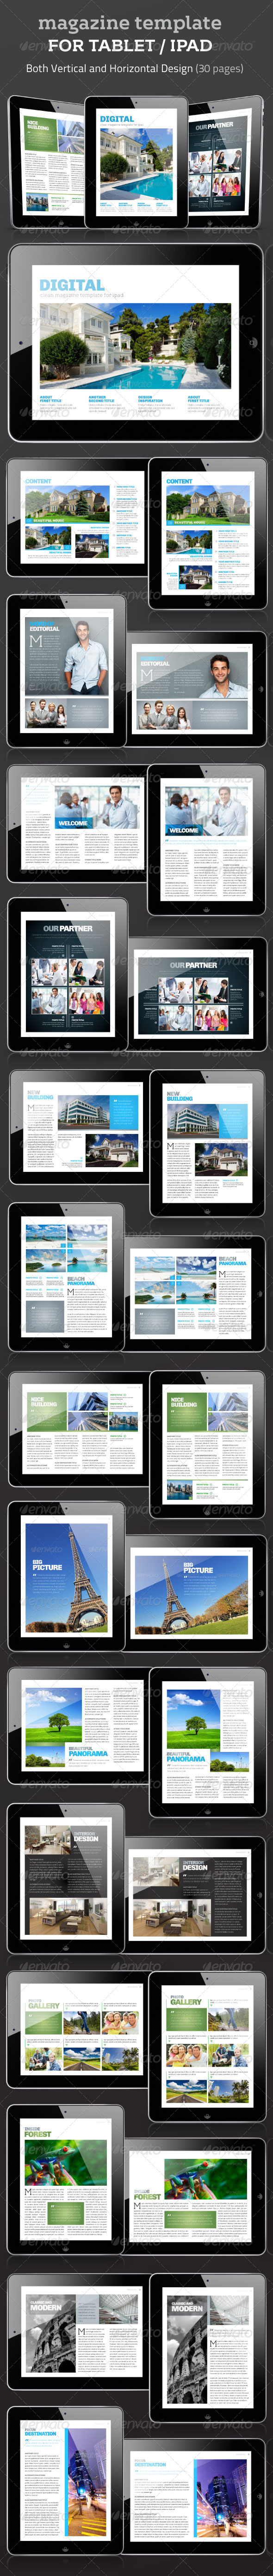 Tablet 15 Pages Mgz (Vol. 6) - Digital Magazines ePublishing